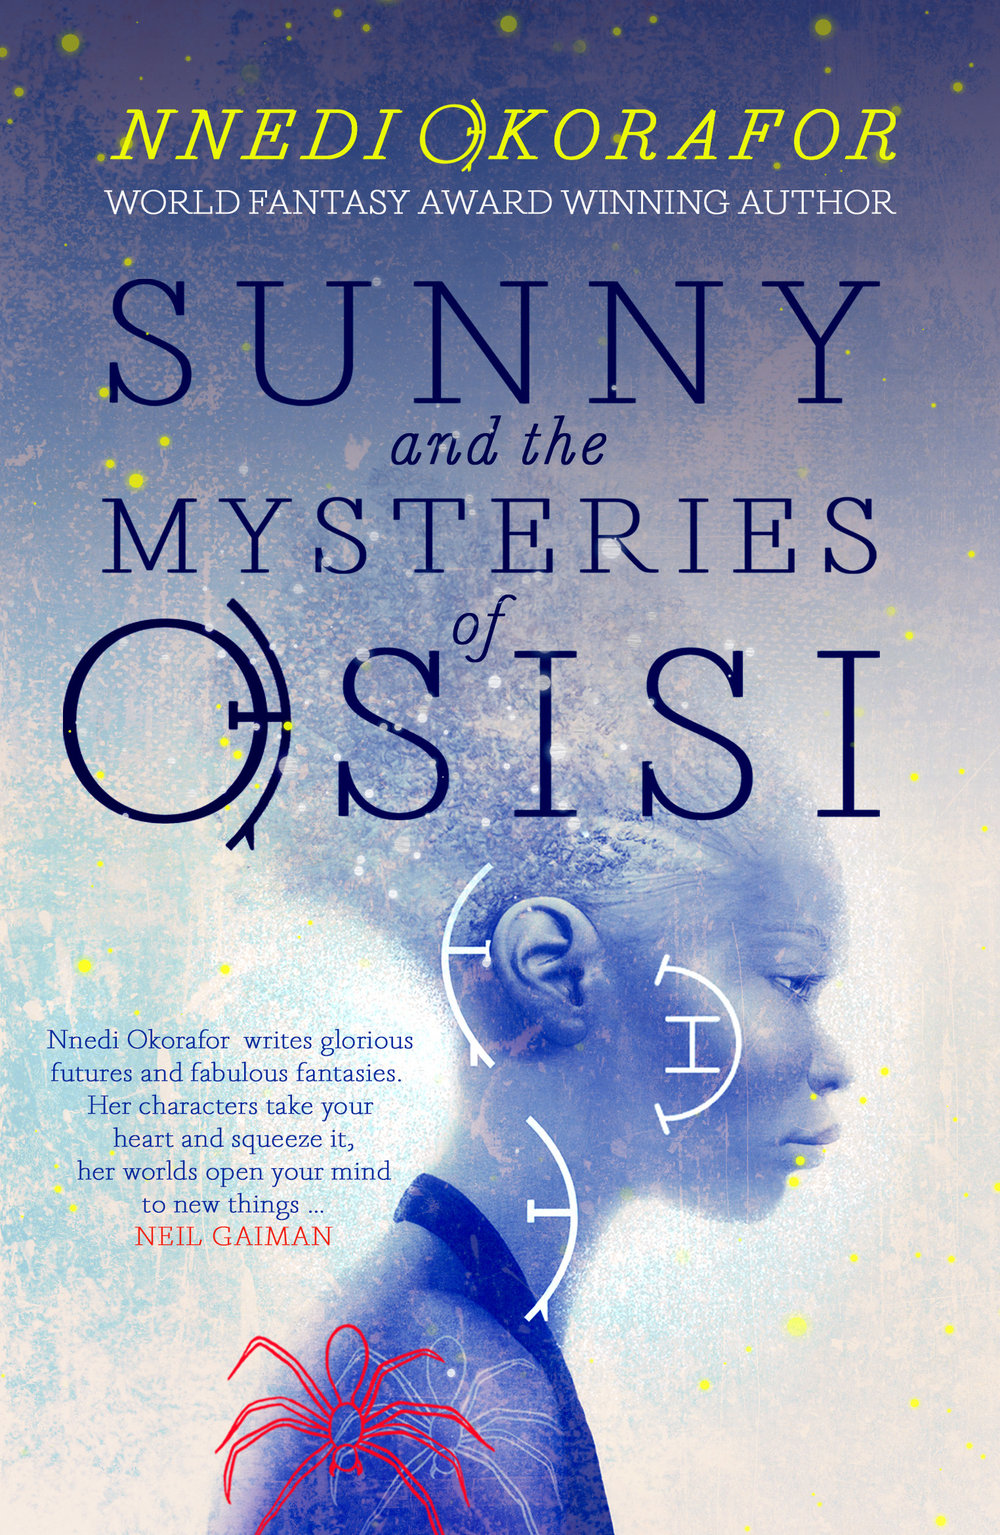 Image: Cassava Republic; Cover Design: Anna Morrison; Illustration: Greg Ruth.